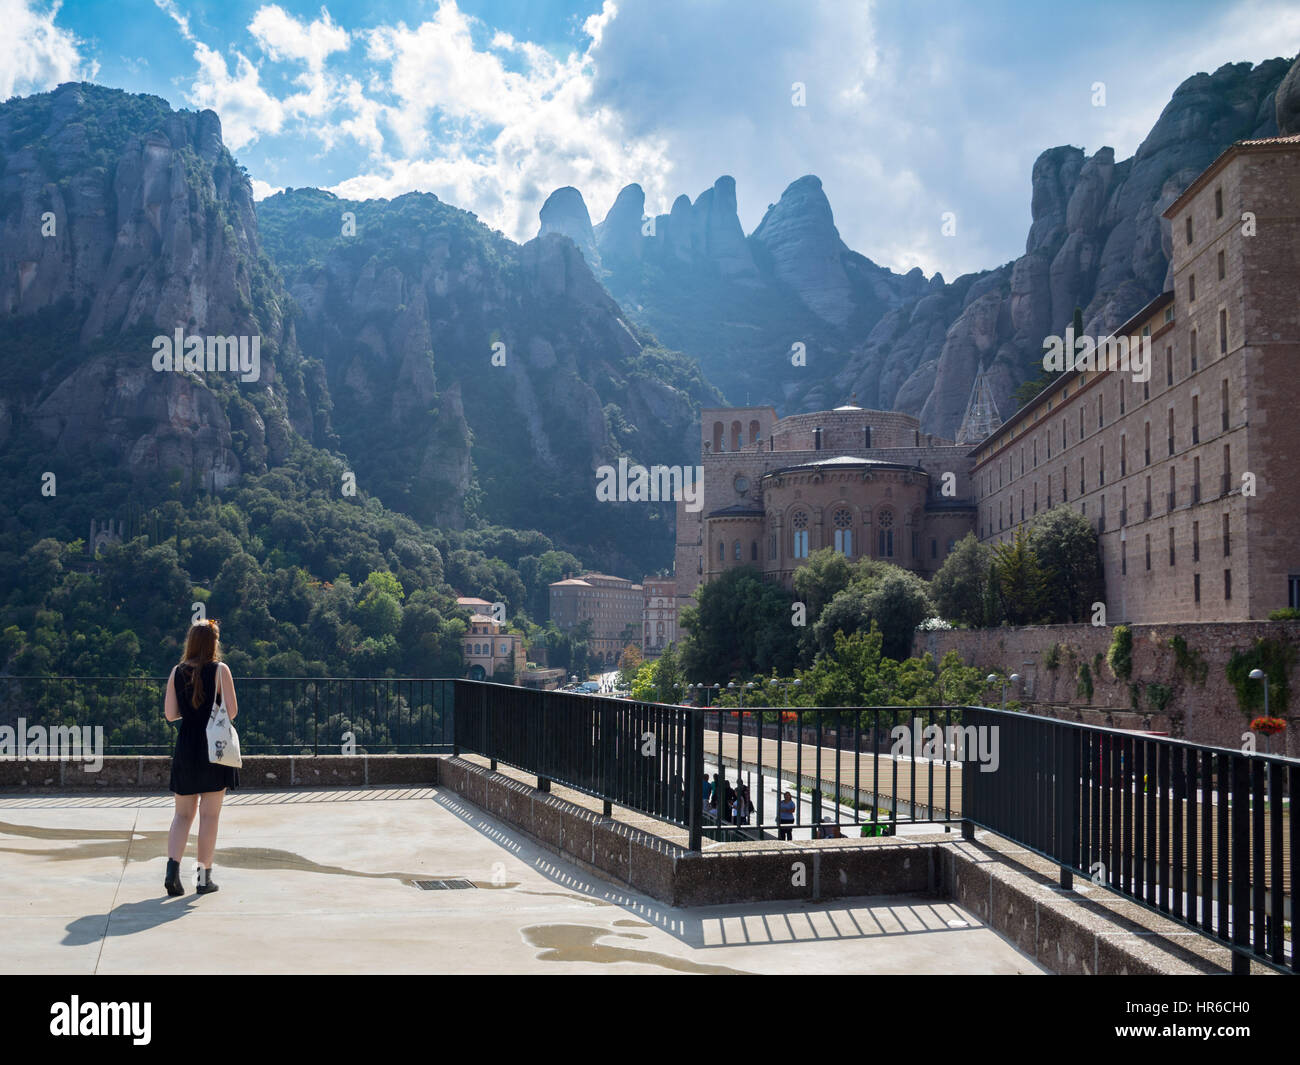 Young woman traveler enjoying the view of mountains on the background. Montserrat. Spain. Europe. - Stock Image